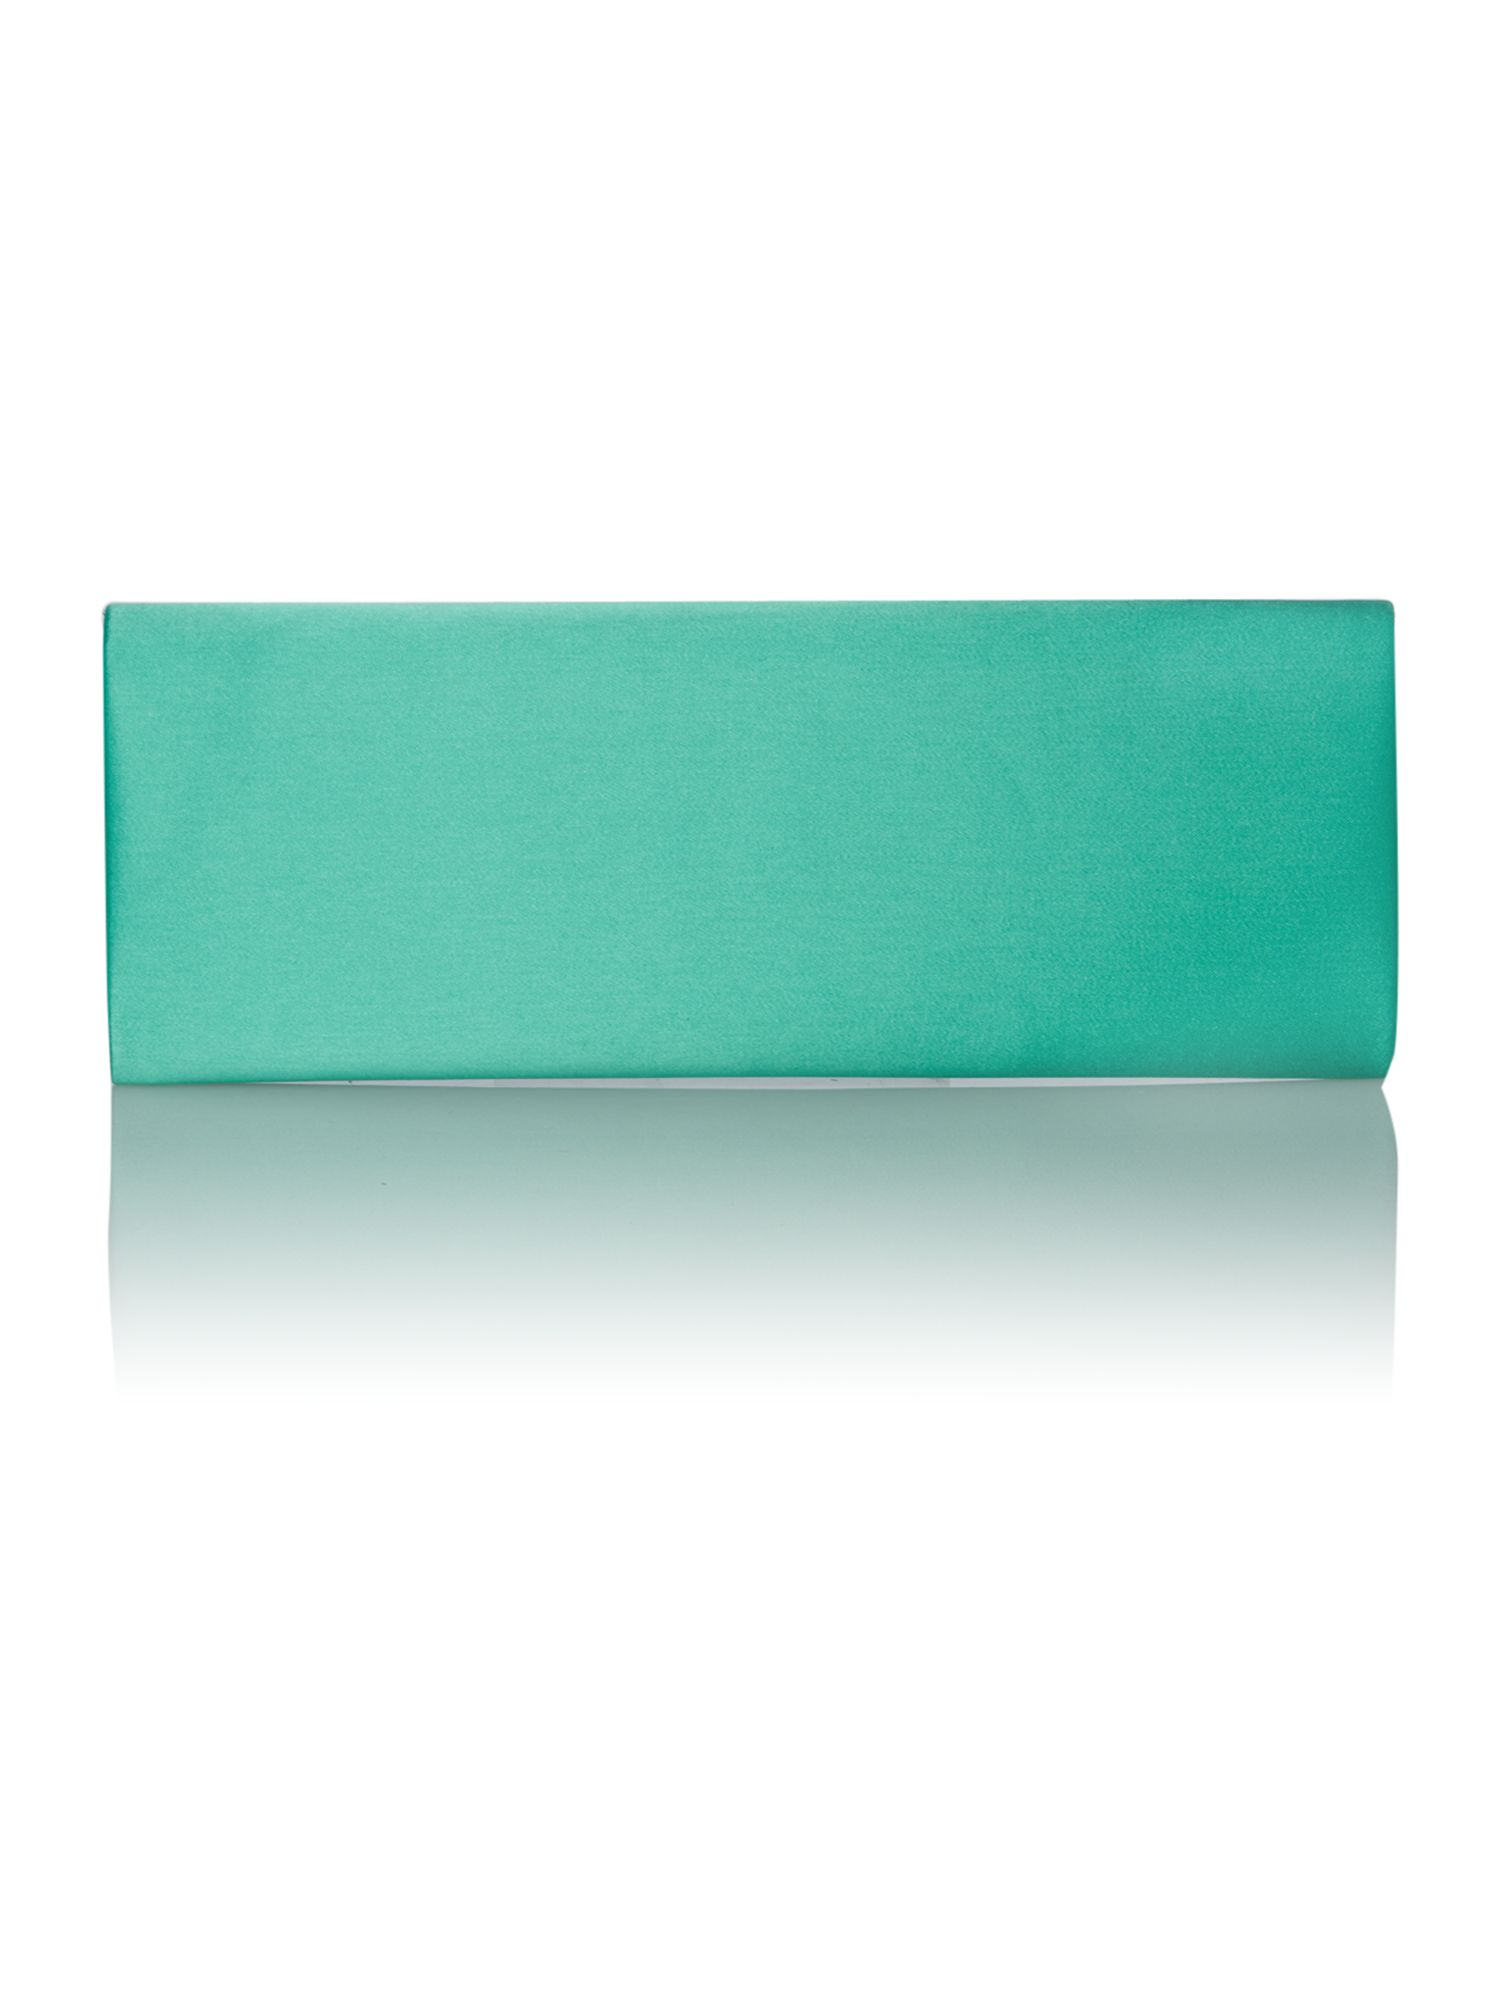 Green satin flap over clutch bag